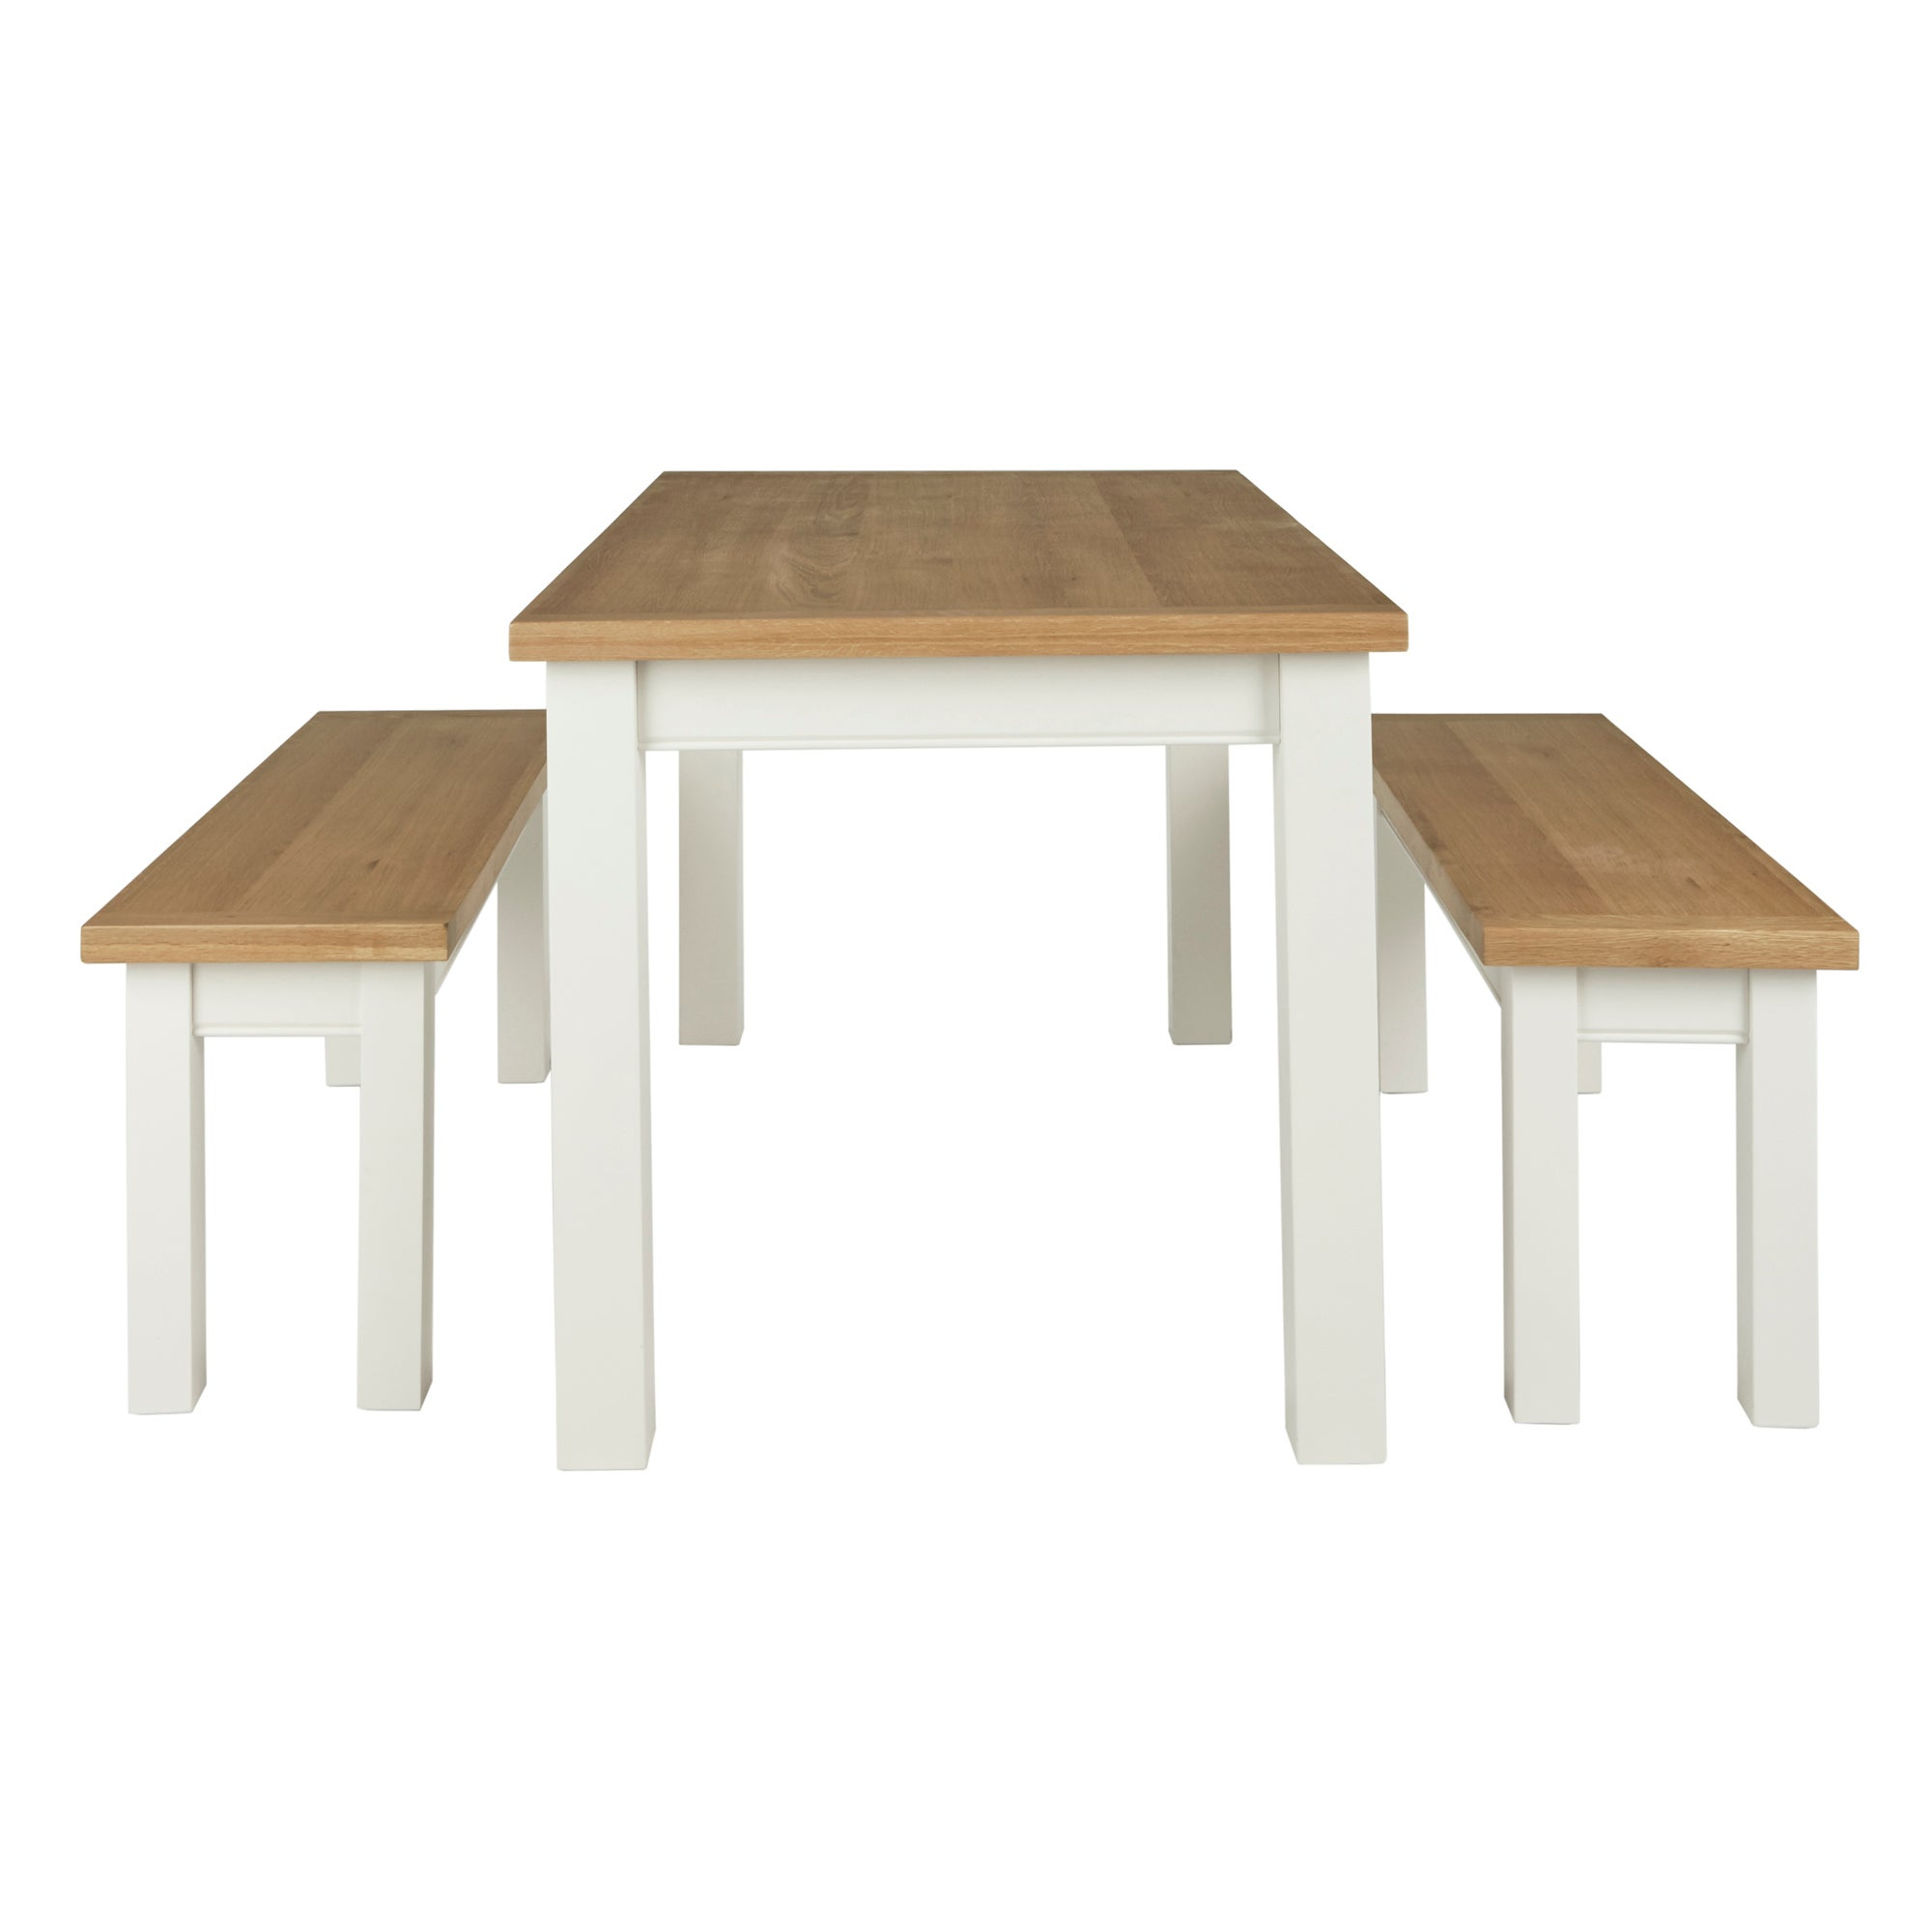 Compton Ivory Dining Table and Bench Set Cream